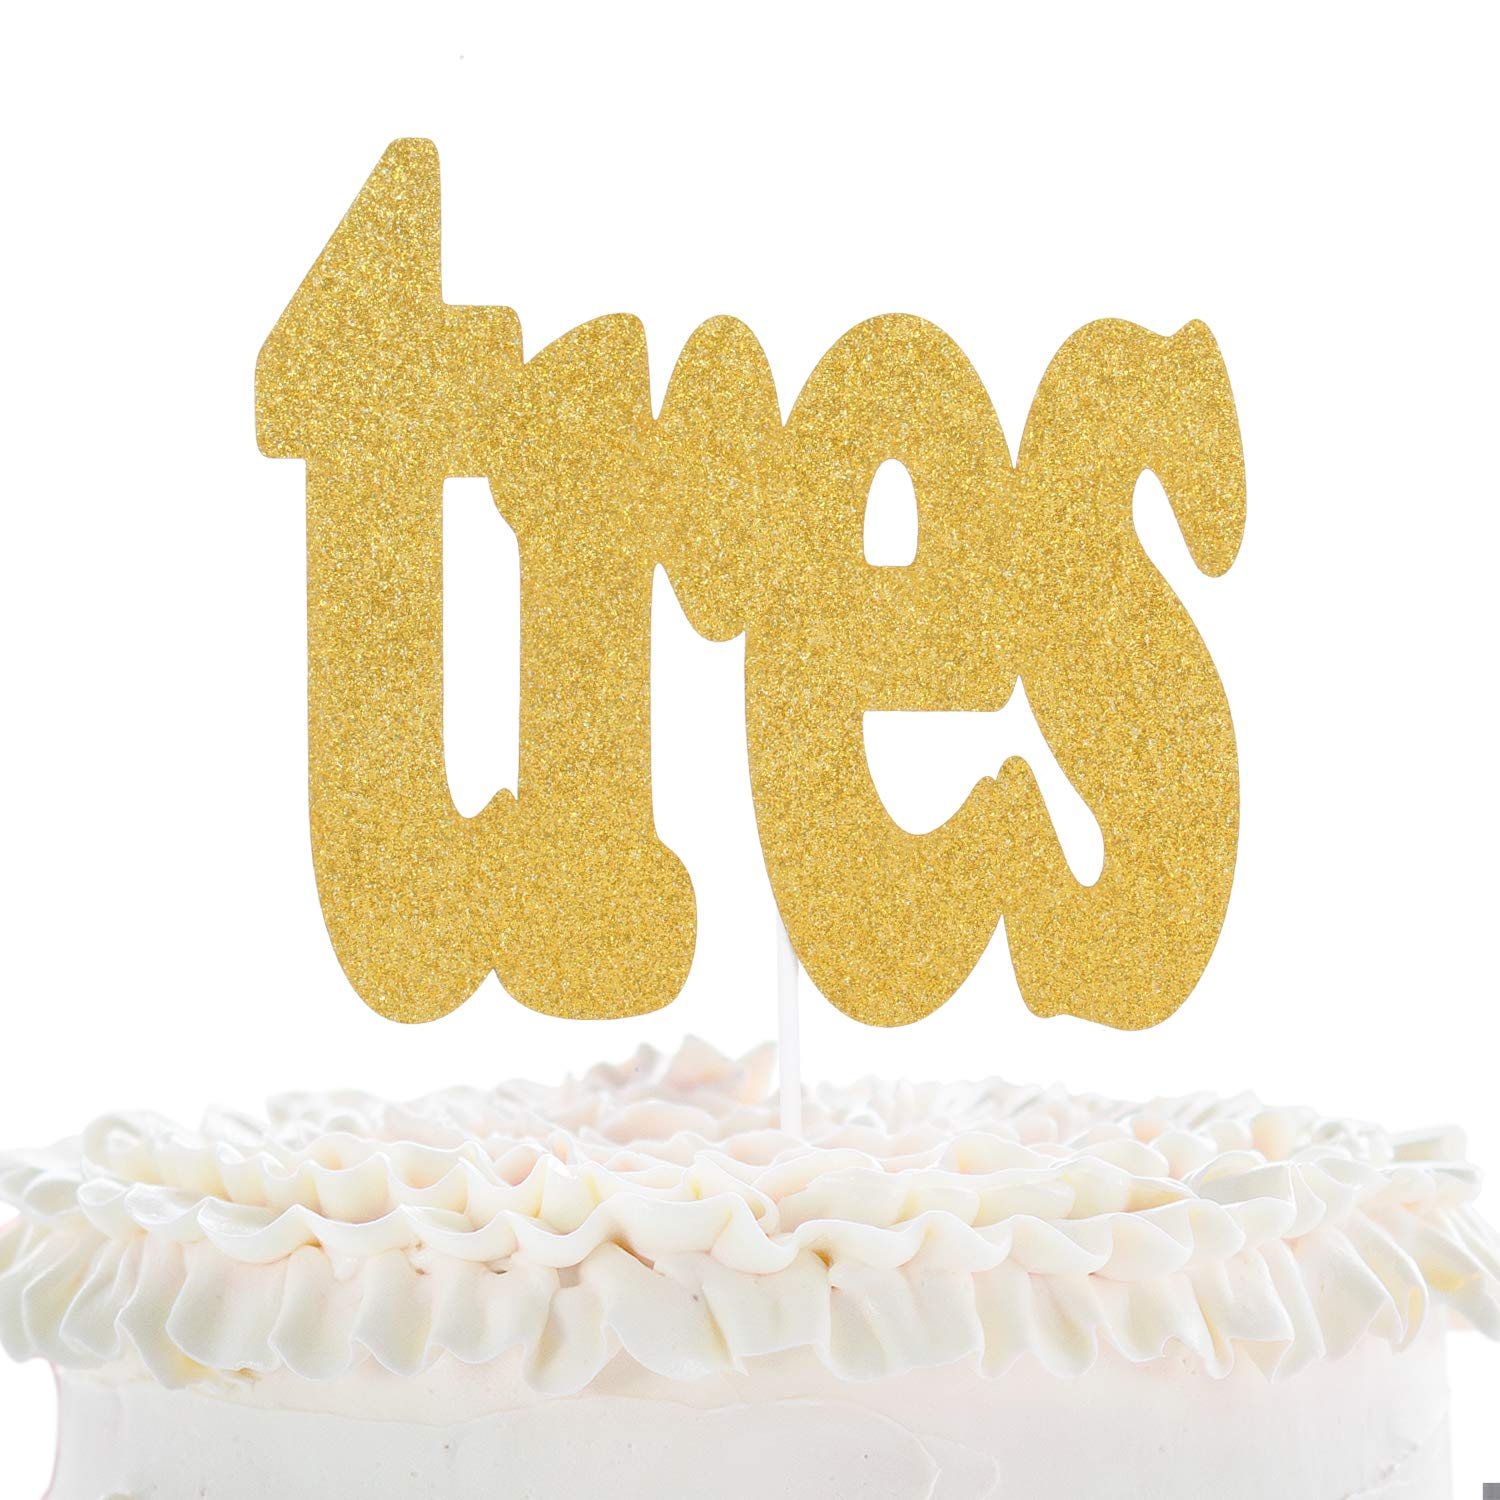 Tres Fiesta 3rd Birthday Cake Topper - Spanish Fiesta Kids Three Years Old Gold Glitter Cake Décor - Boys Girls Third Birthday Party - 3 Years Wedding Anniversary Derocation